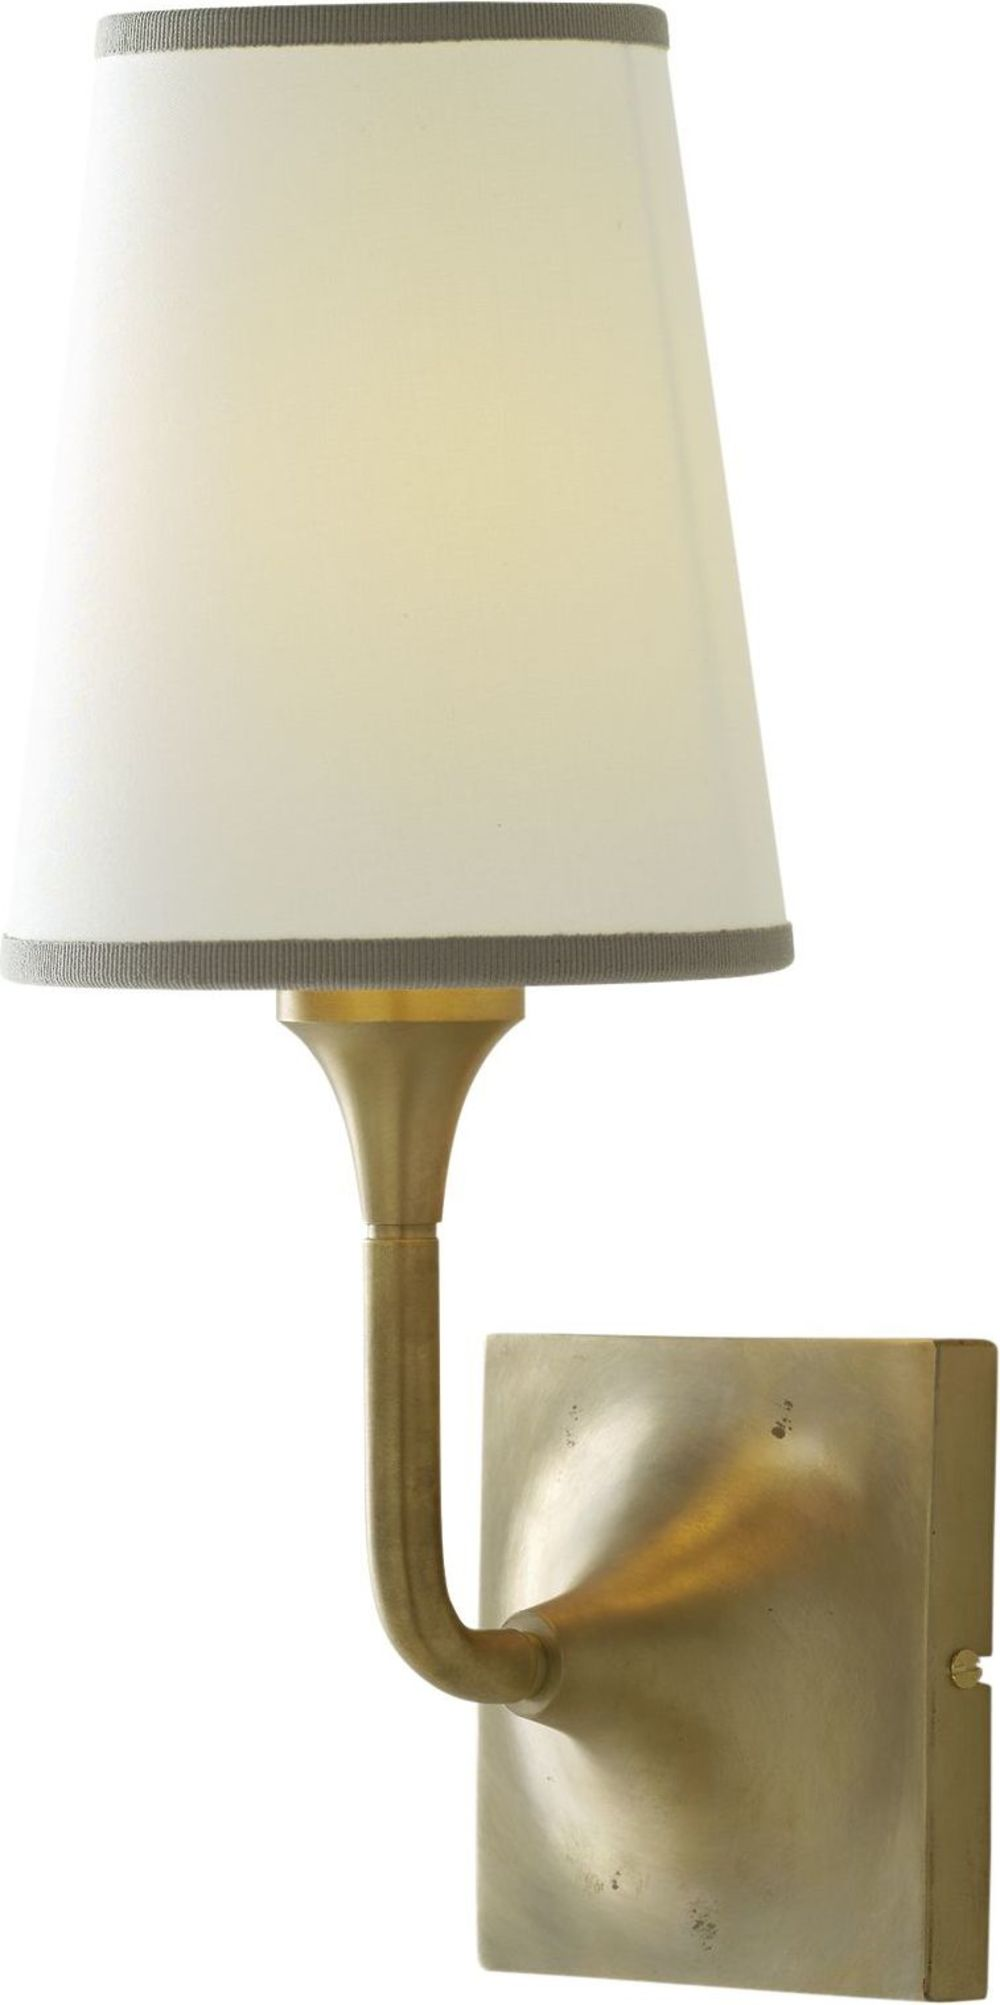 Baker Furniture - Lur Wall Sconce